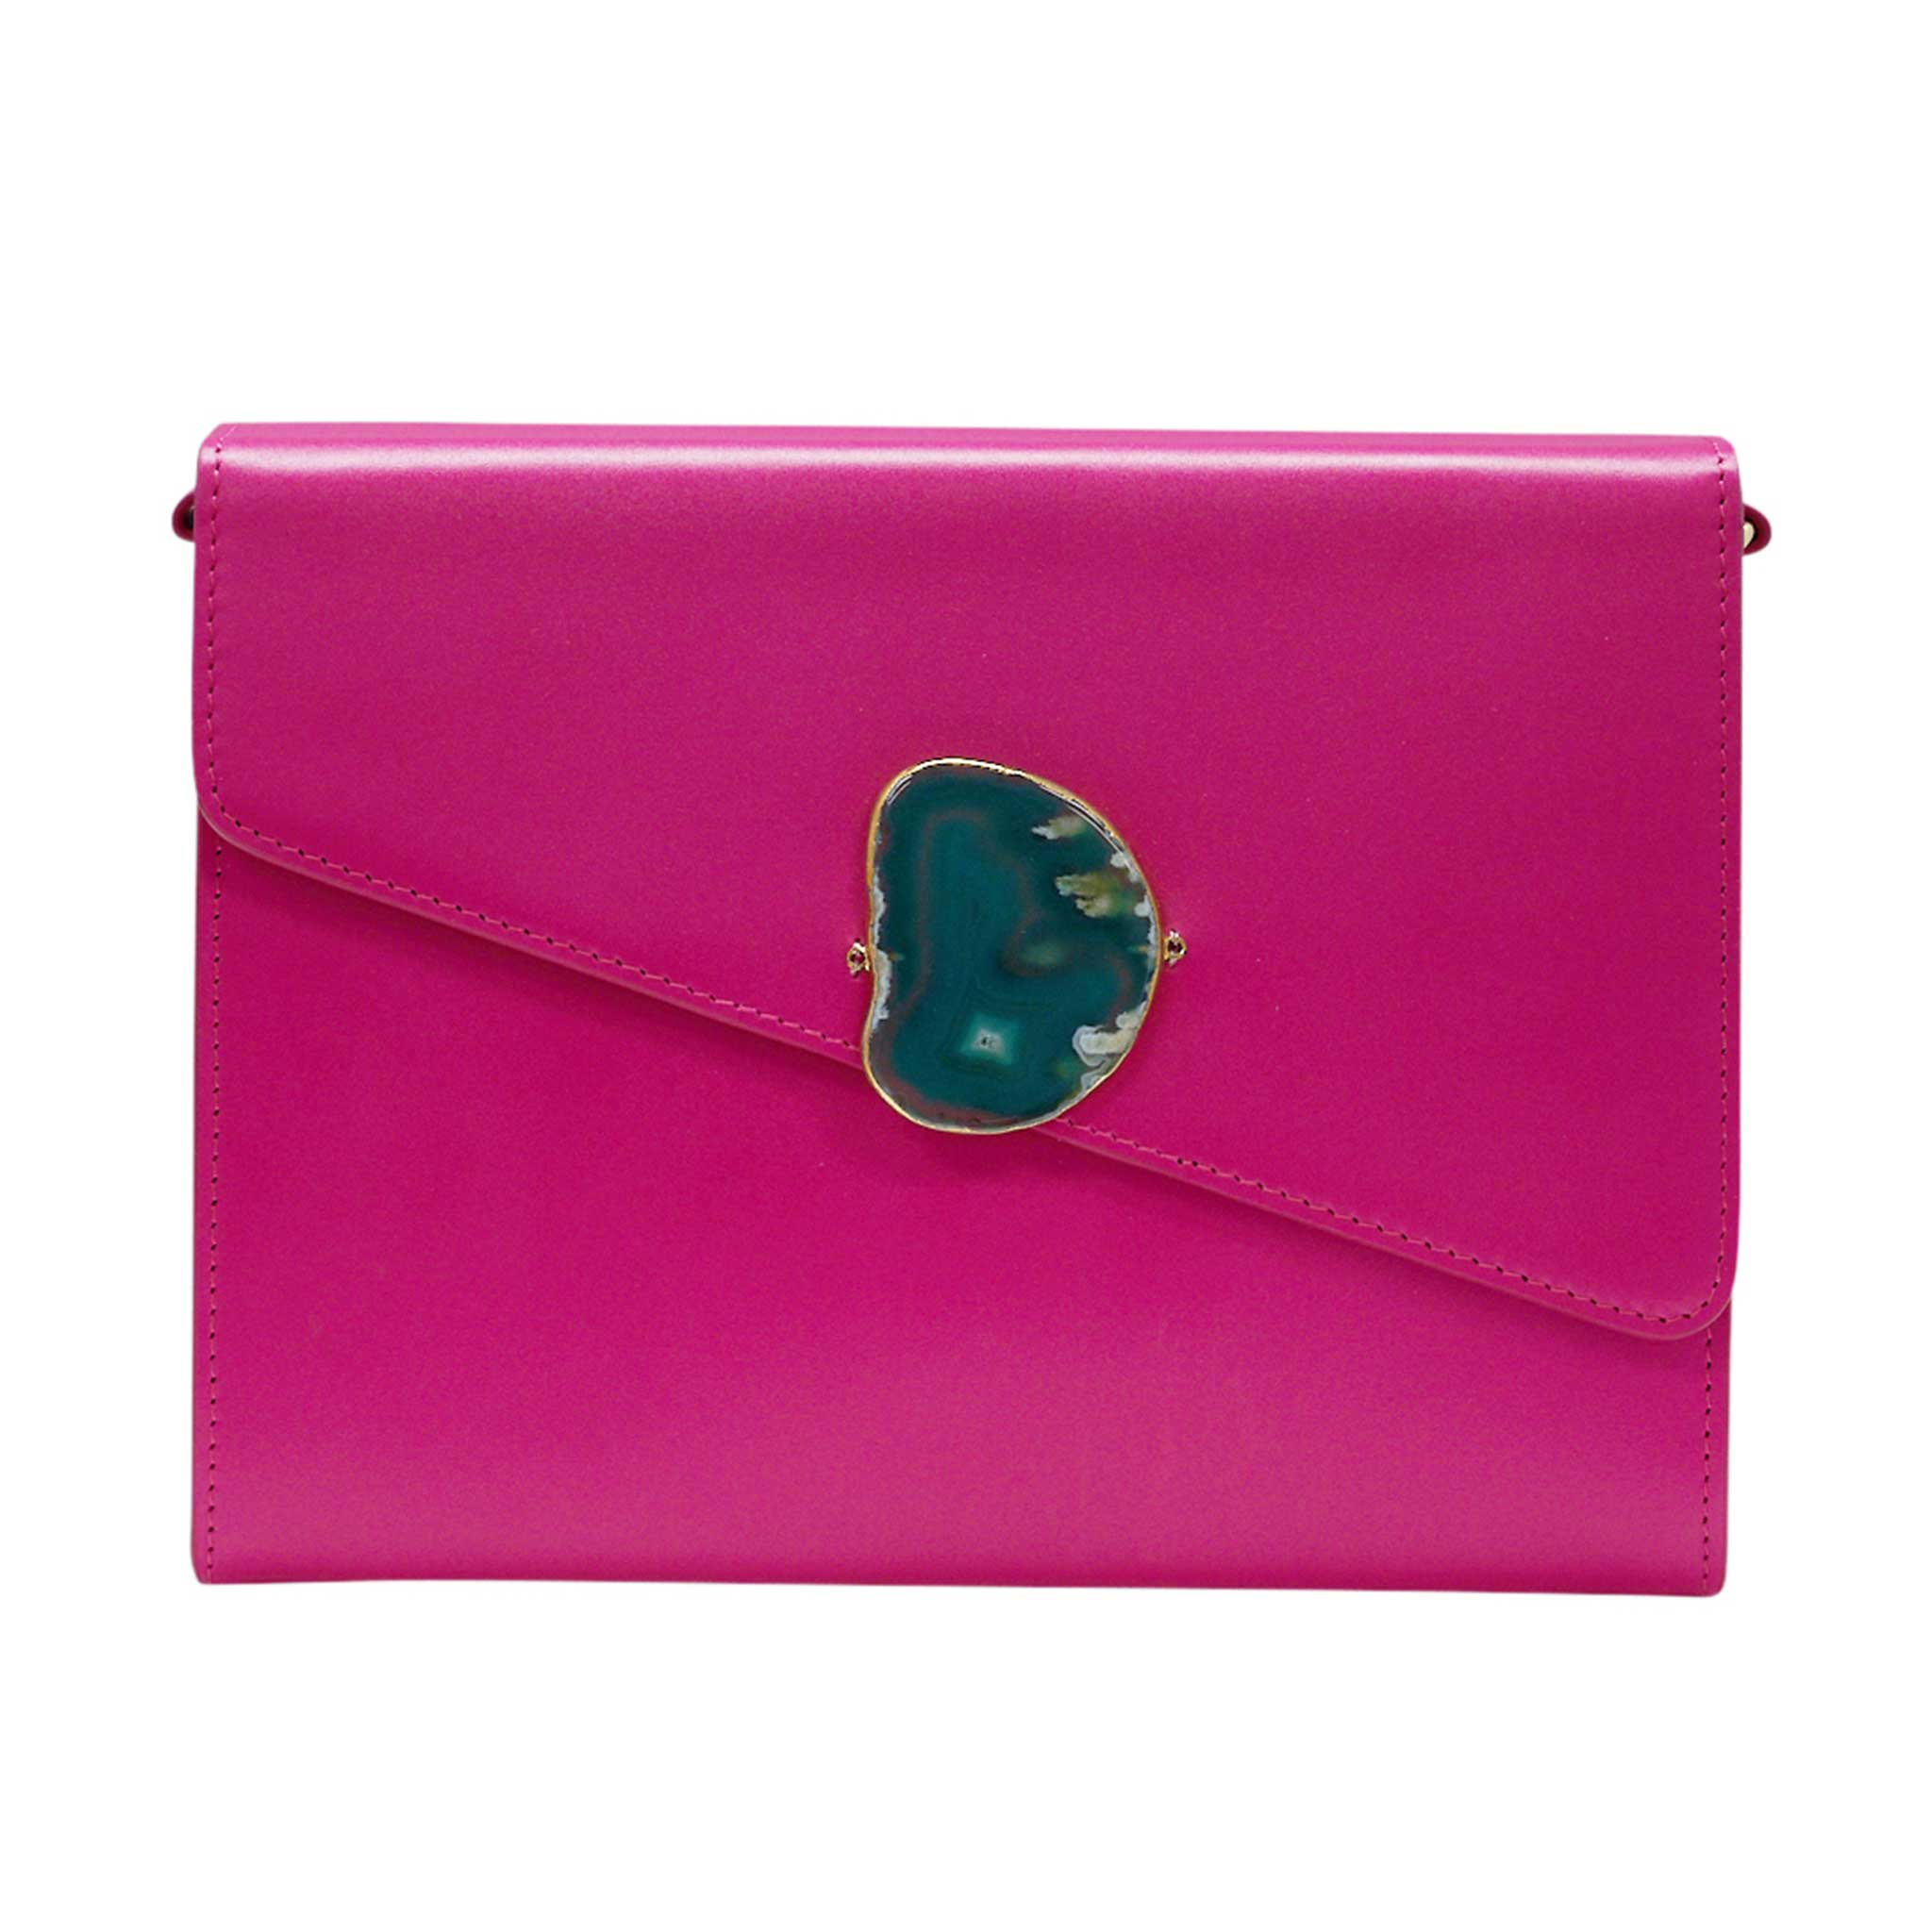 LOVED BAG - PINK RUBY LEATHER WITH BLUE AGATE - 1.01.003.015